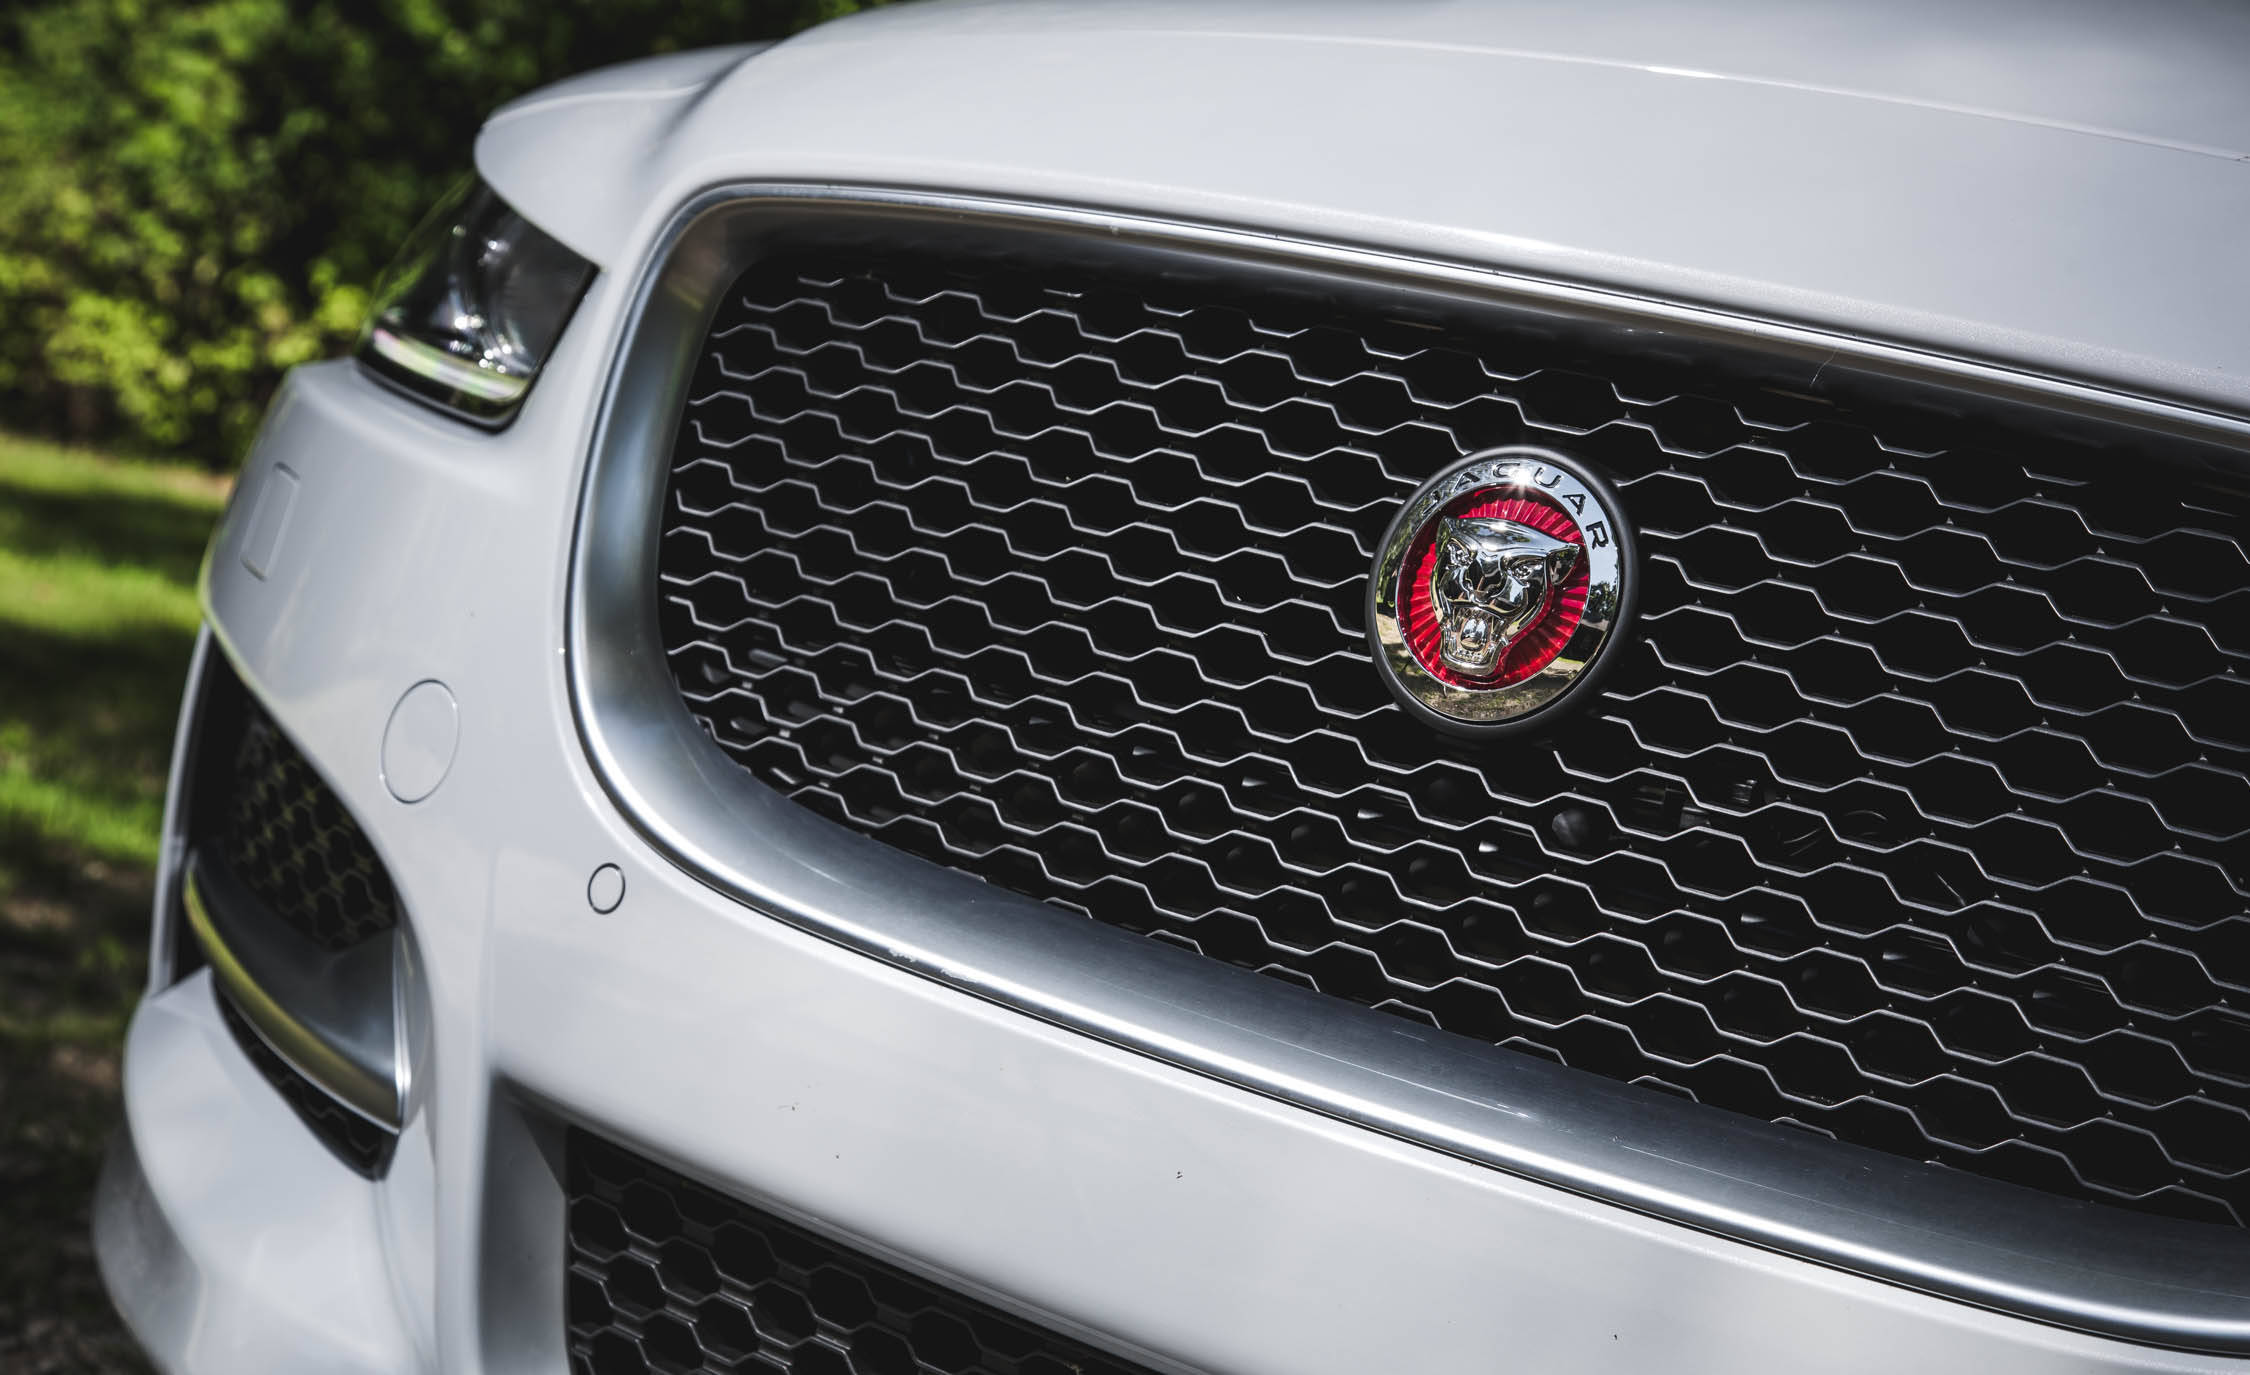 2017 Jaguar Xe White Exterior View Grille (Photo 25 of 32)